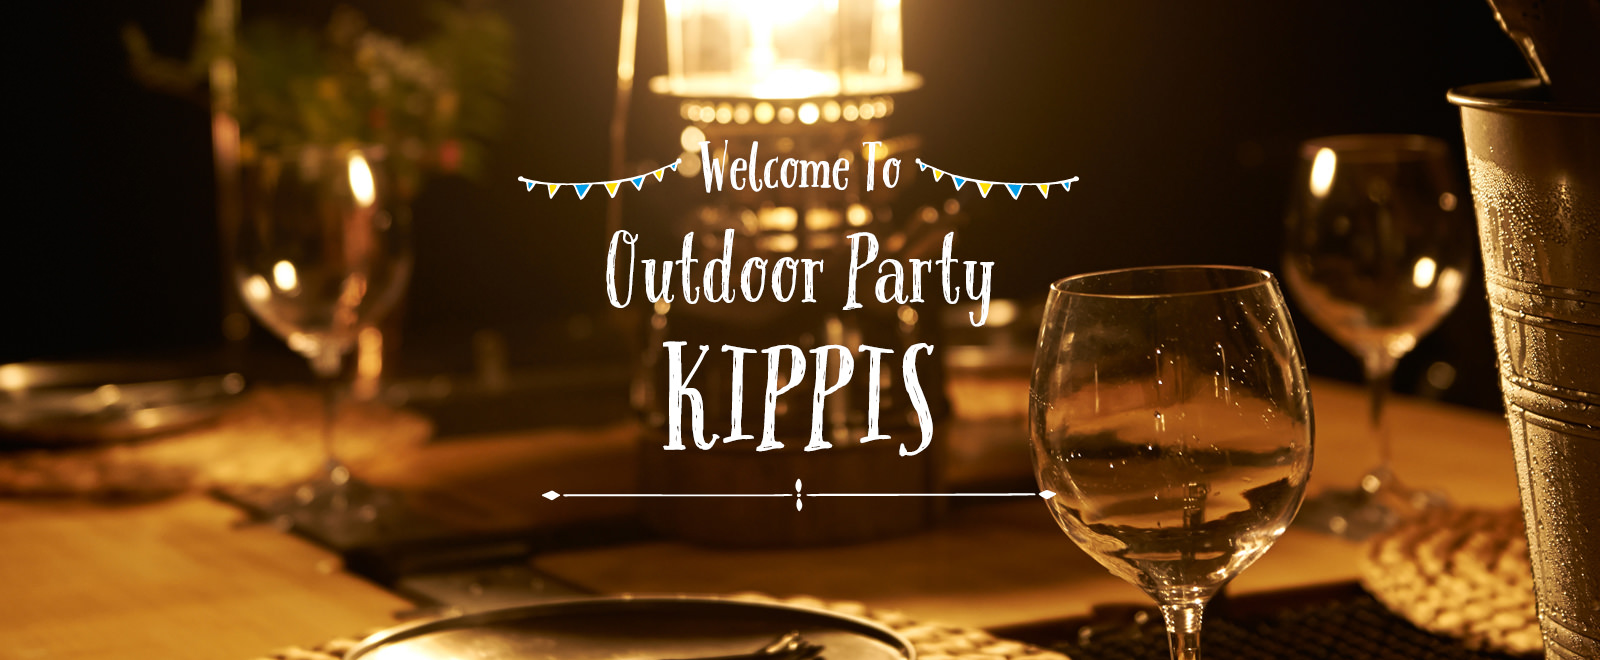 Welcome to OutdoorParty KIPPIS ワイングラス